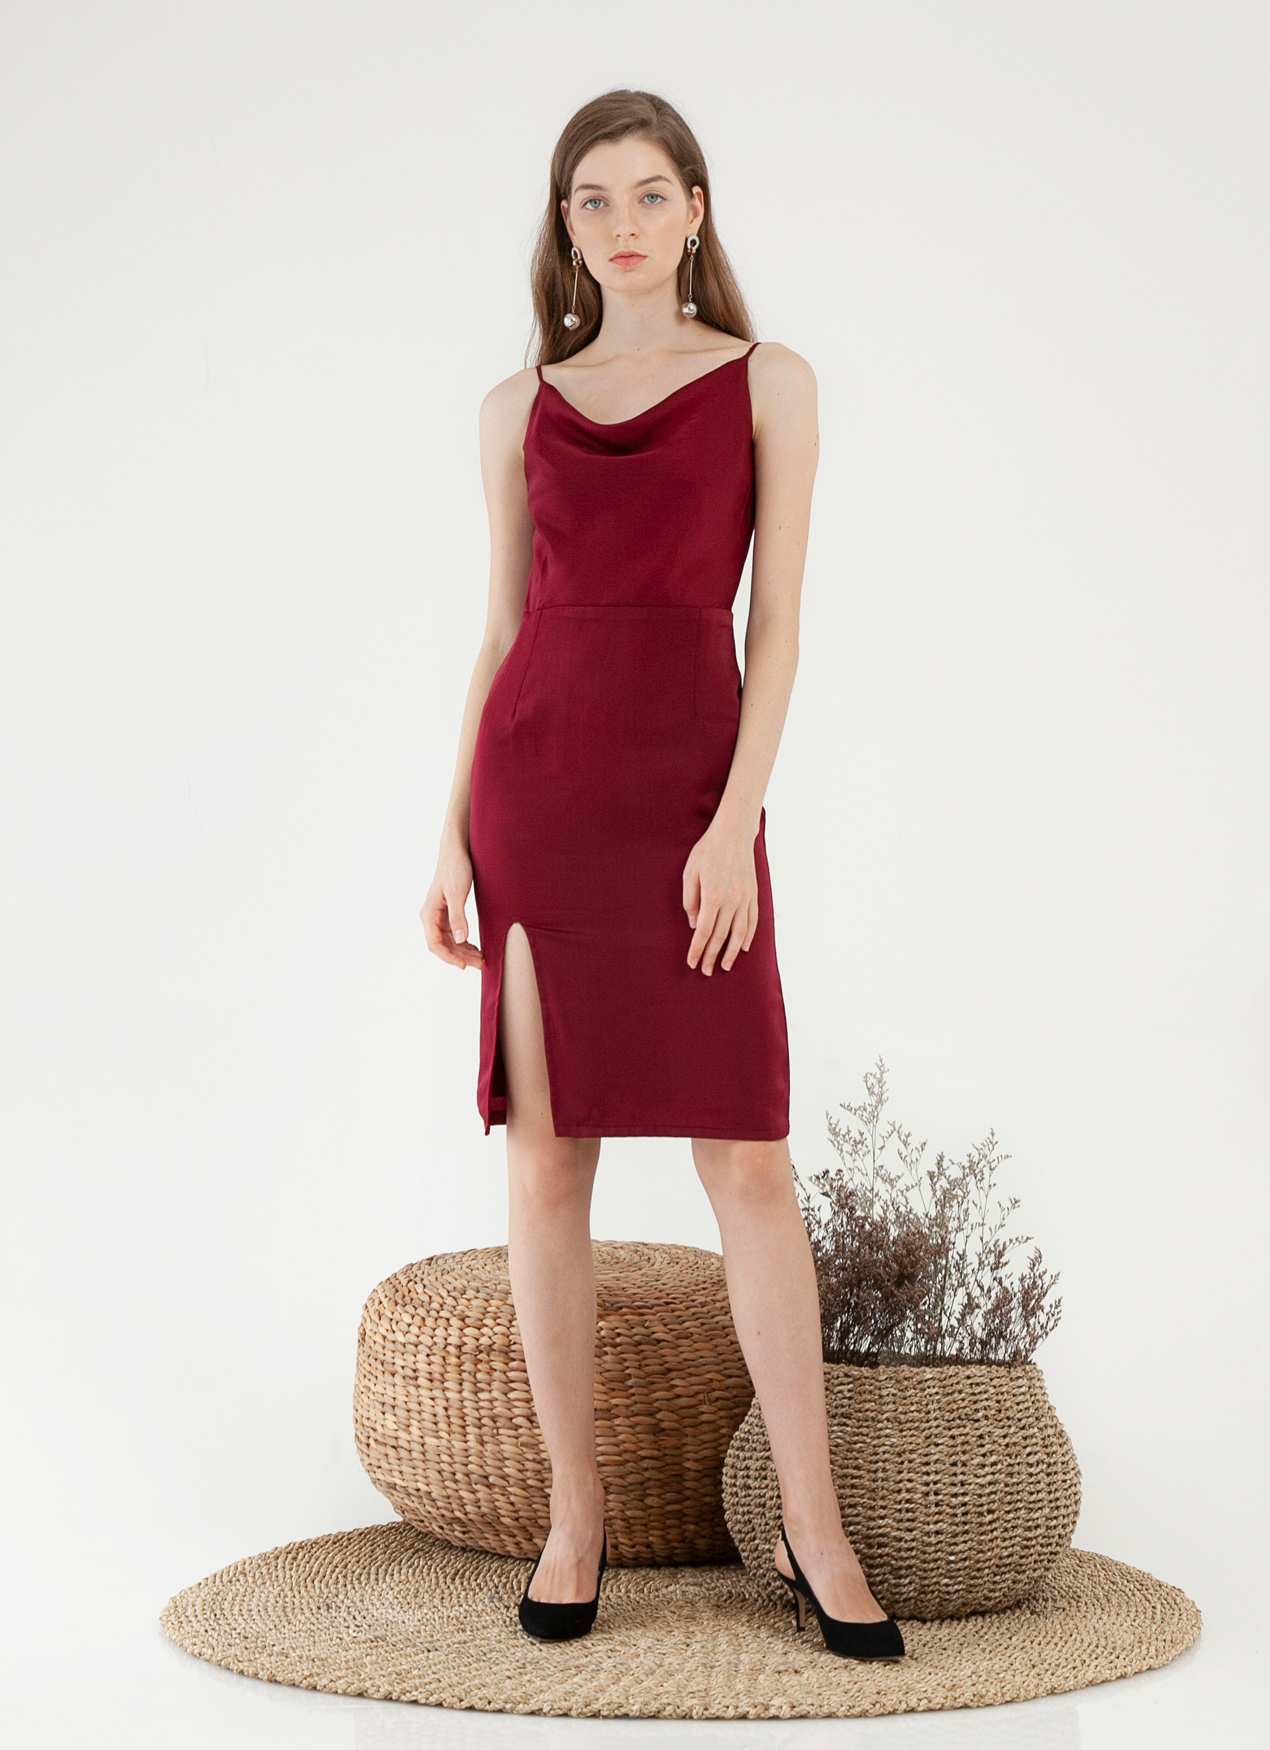 CLOTH INC Drapery Slit Dress - Maroon